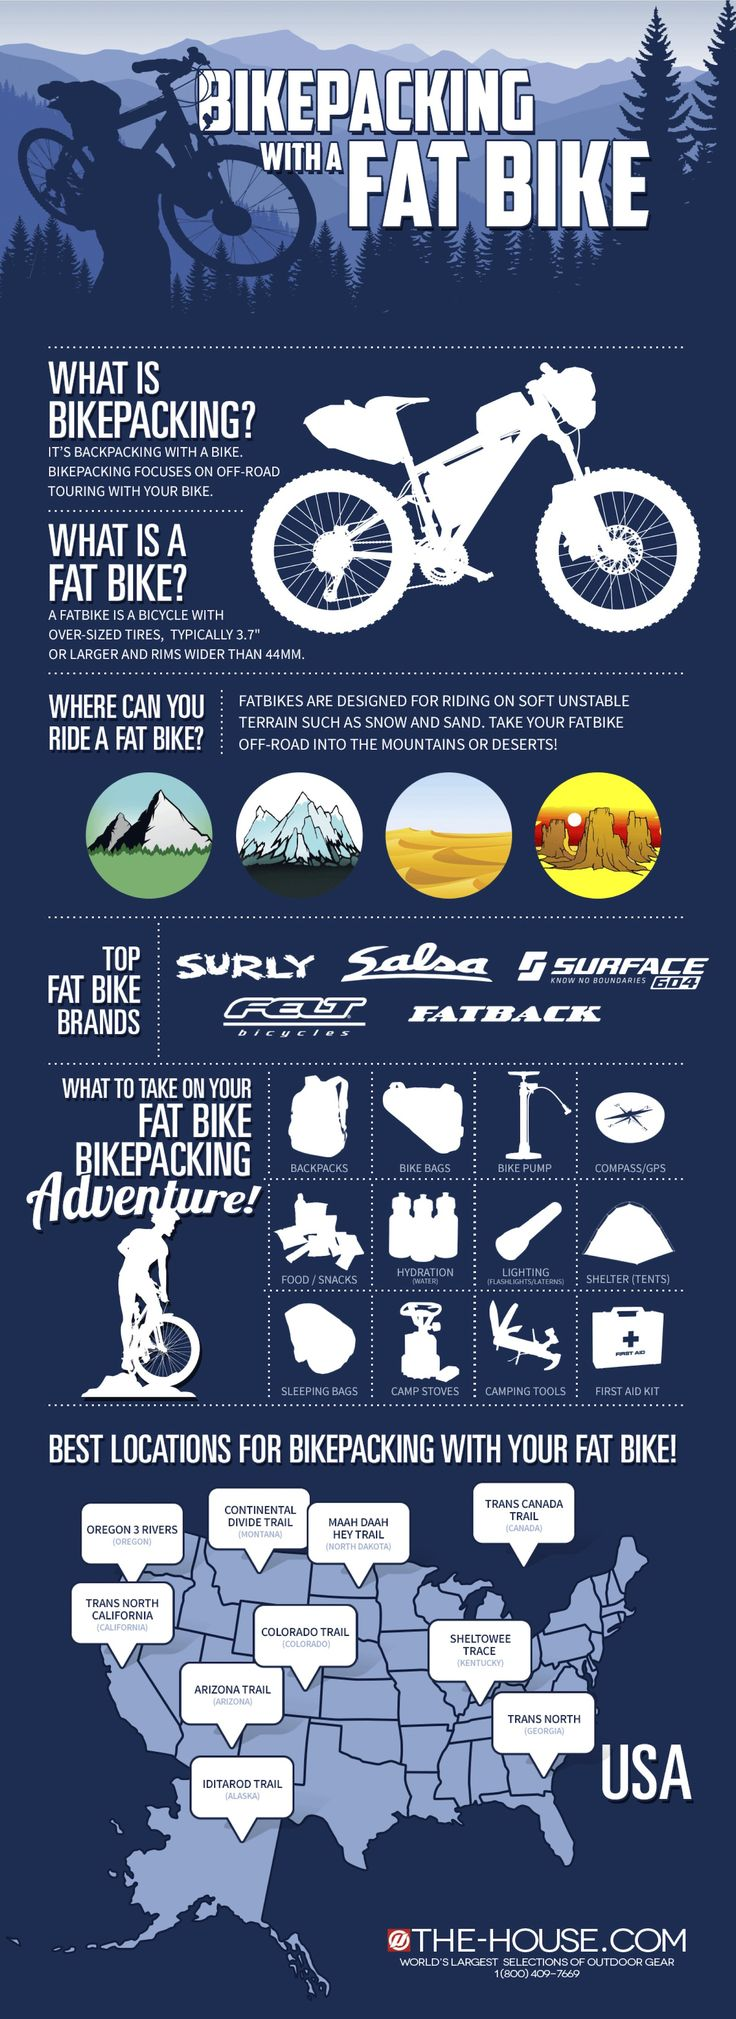 Have you ever tried biking with a fat bike? Fat bikes are awesome for outdoor adventures! Their oversized tires makes it easy to go through mountains, deserts, and other tough territories. These bikesare perfect for bikepacking (backpacking with a bike) adventures.  This inforgraphic offers a closer look at what bikepacking is and what a fat bike is.